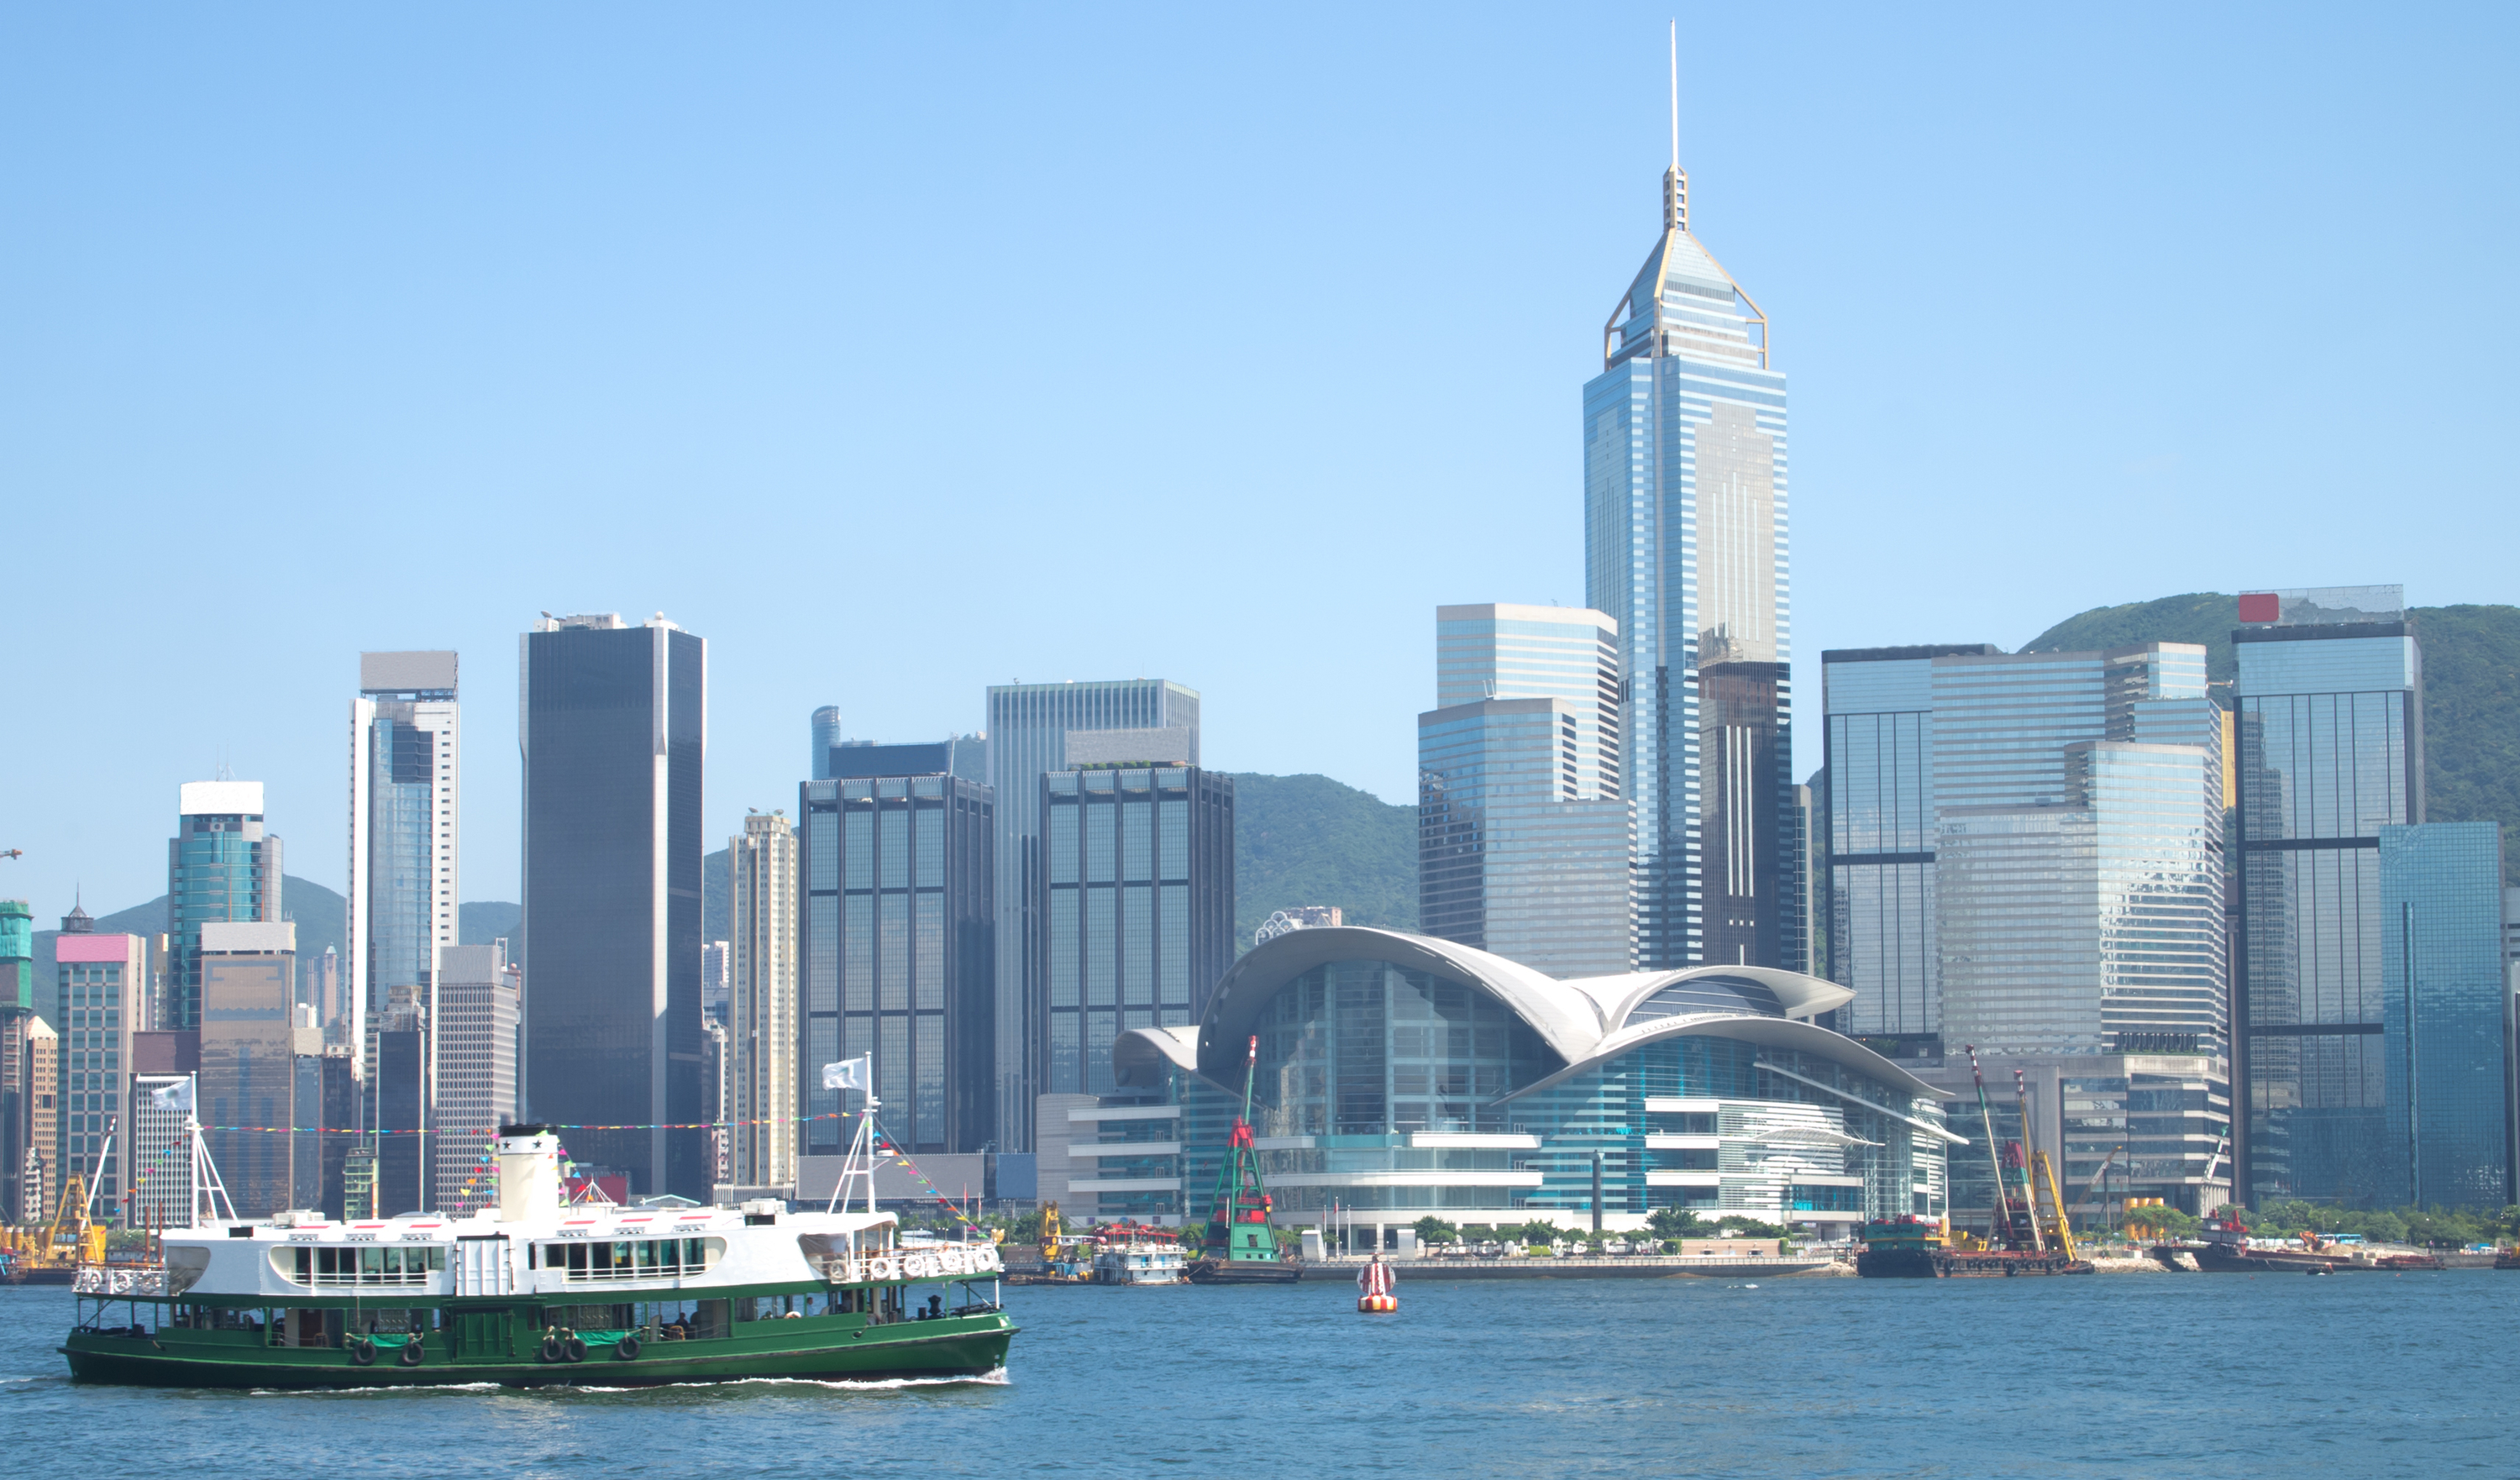 12.30pm-1pm: Take the Star Ferry to Kowloon